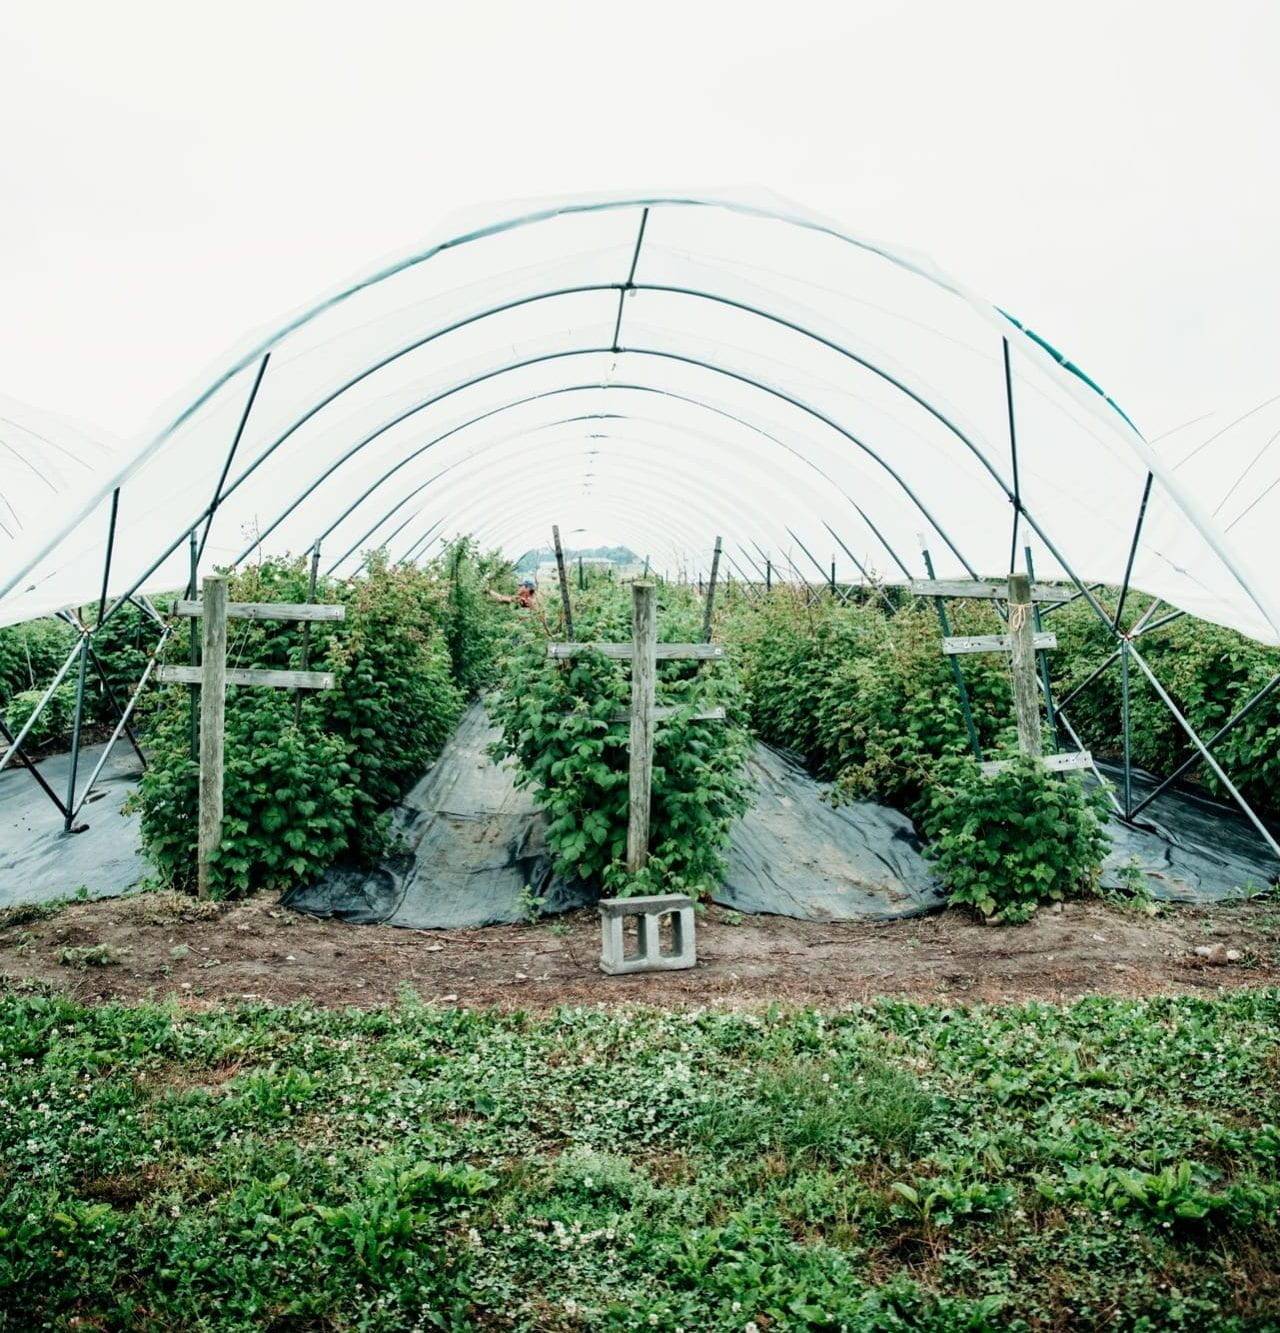 Raspberry plants in a high tunnel.